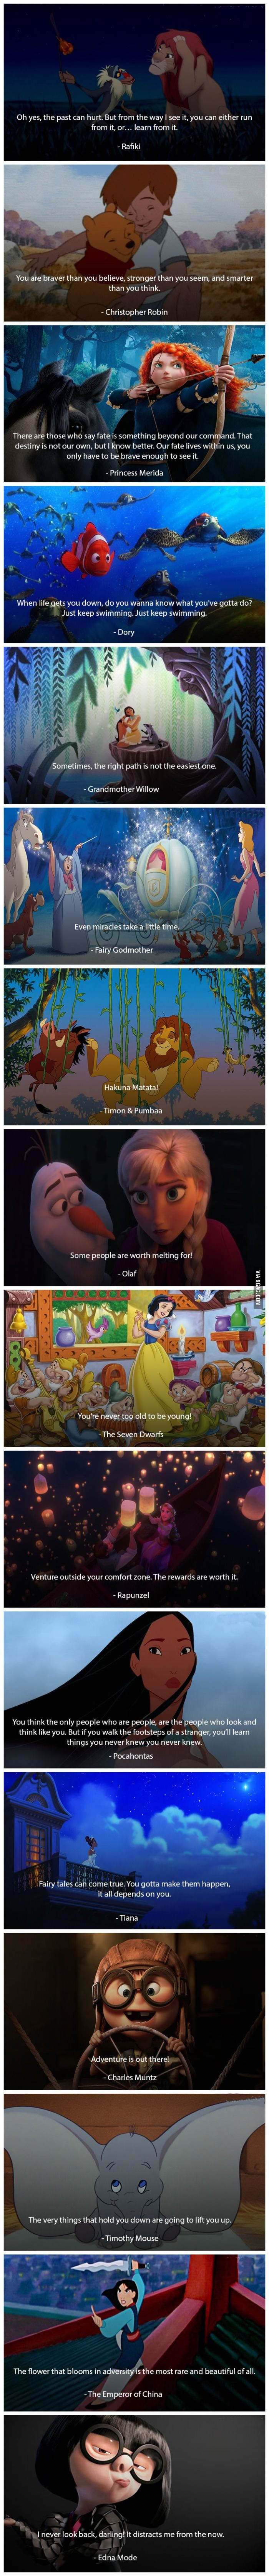 16 Times Disney Characters Gave You Amazing Life Advice